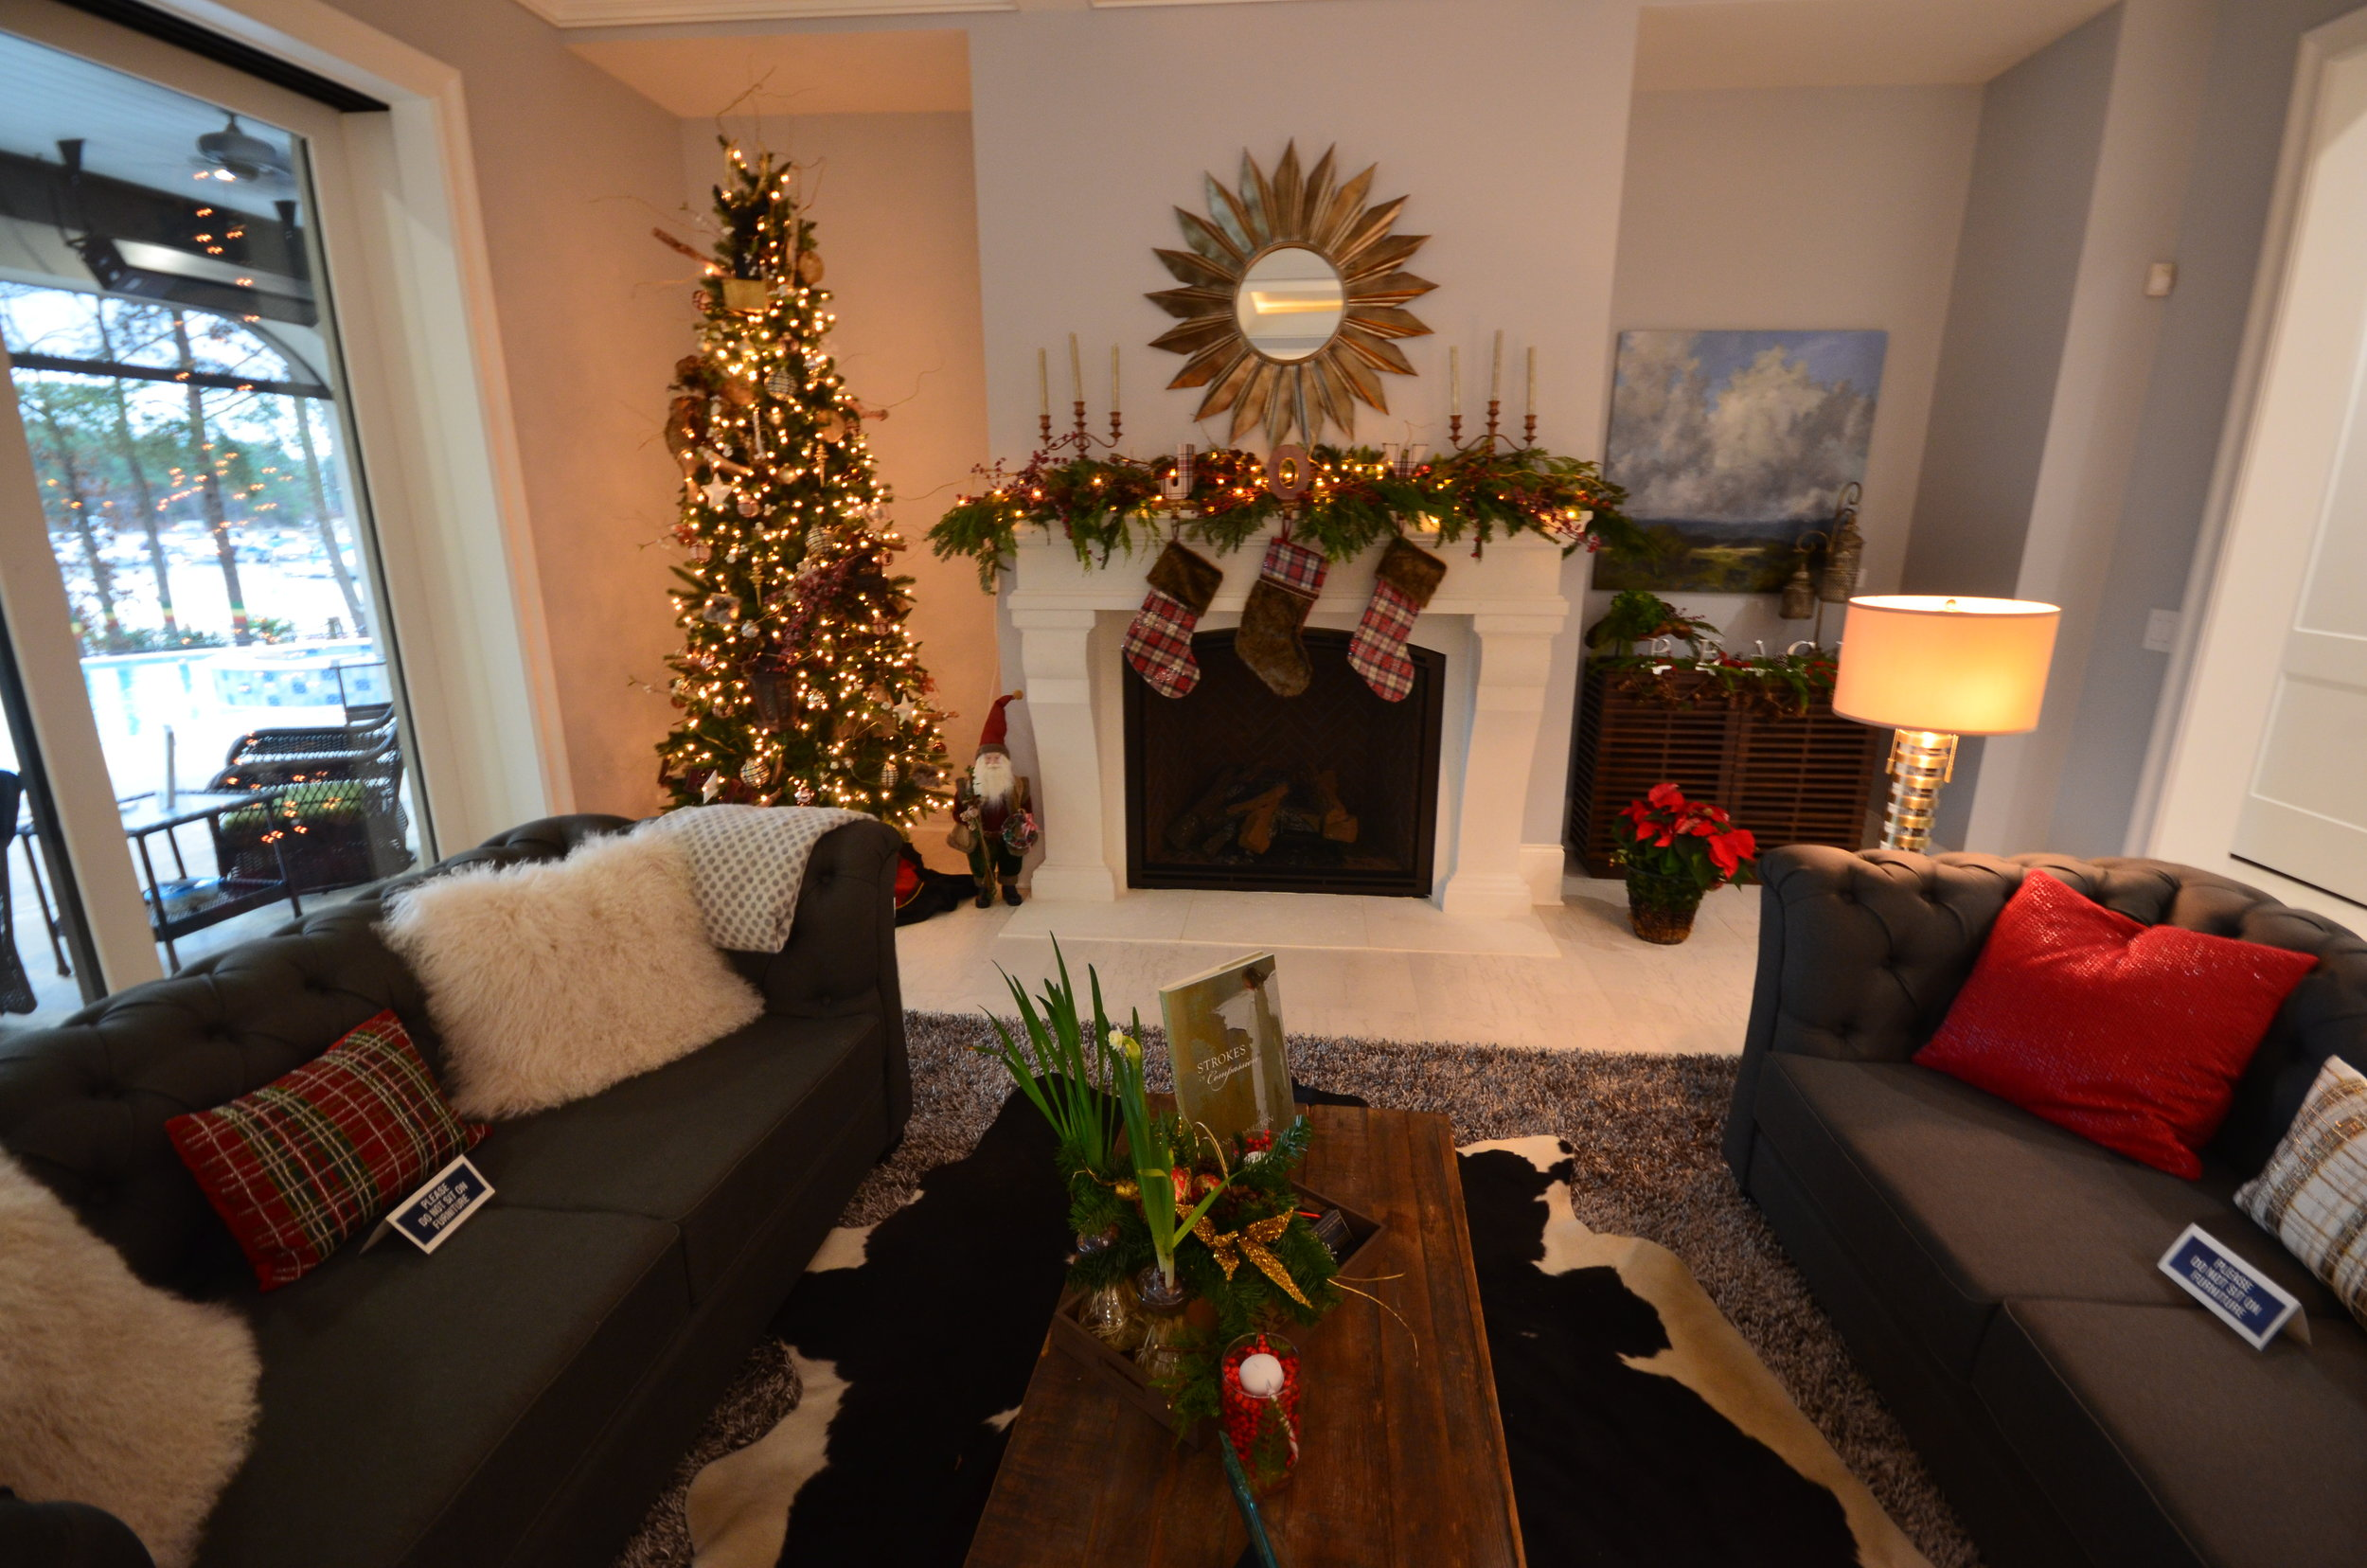 Great room with holiday decor